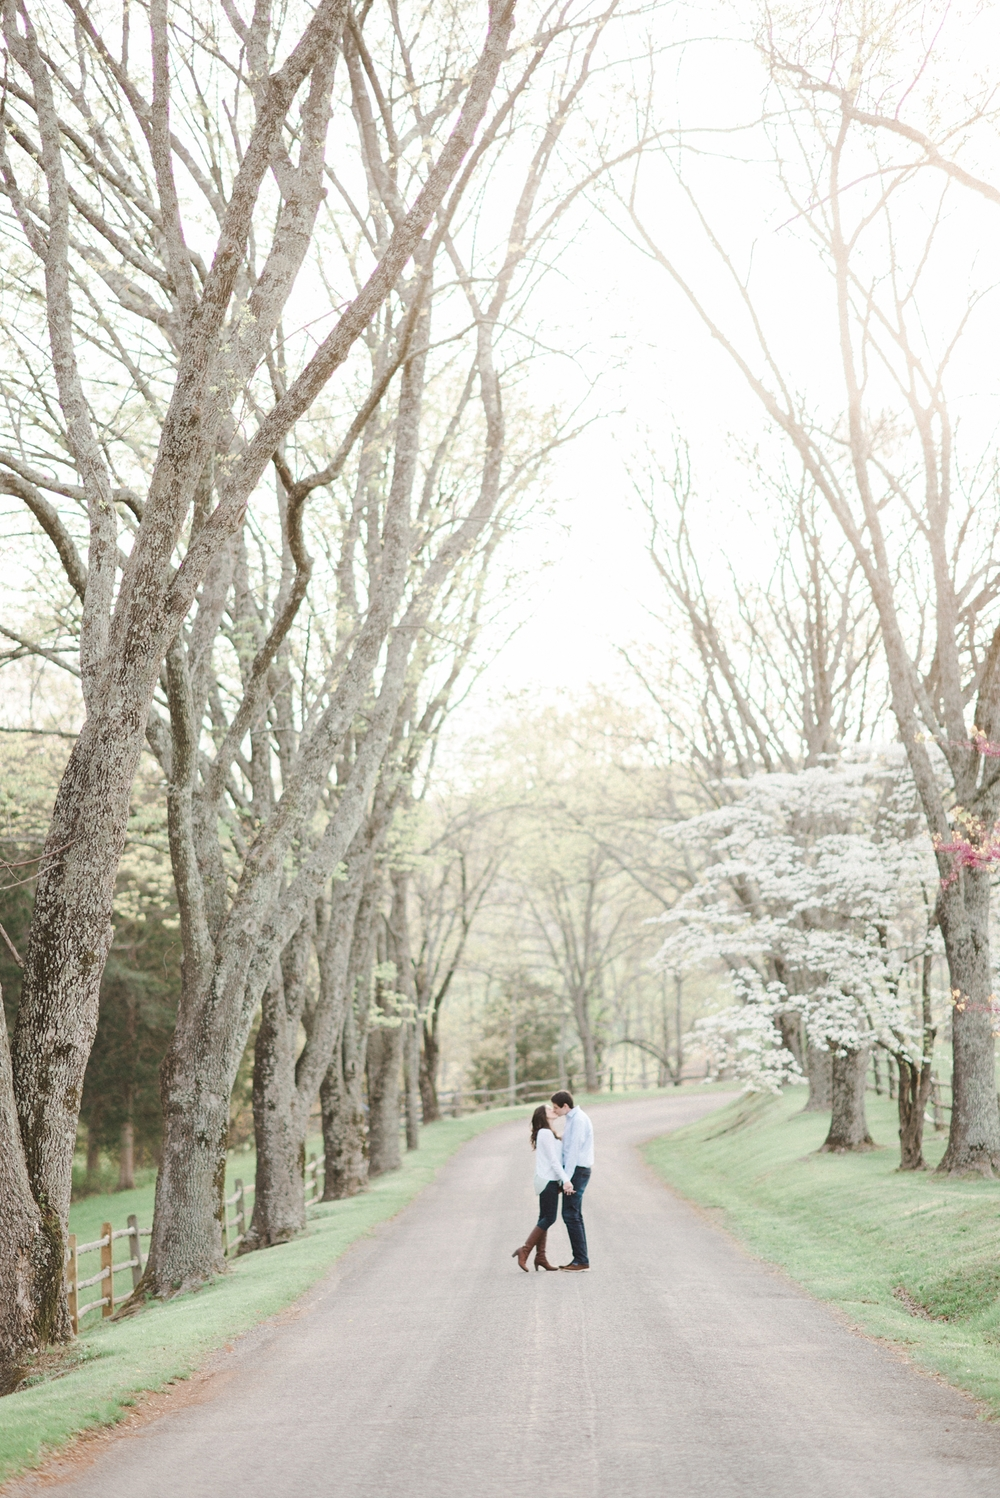 virginia_wedding_photographer_charlottesville_engagemnet_ashlawn_highland_0017.jpg